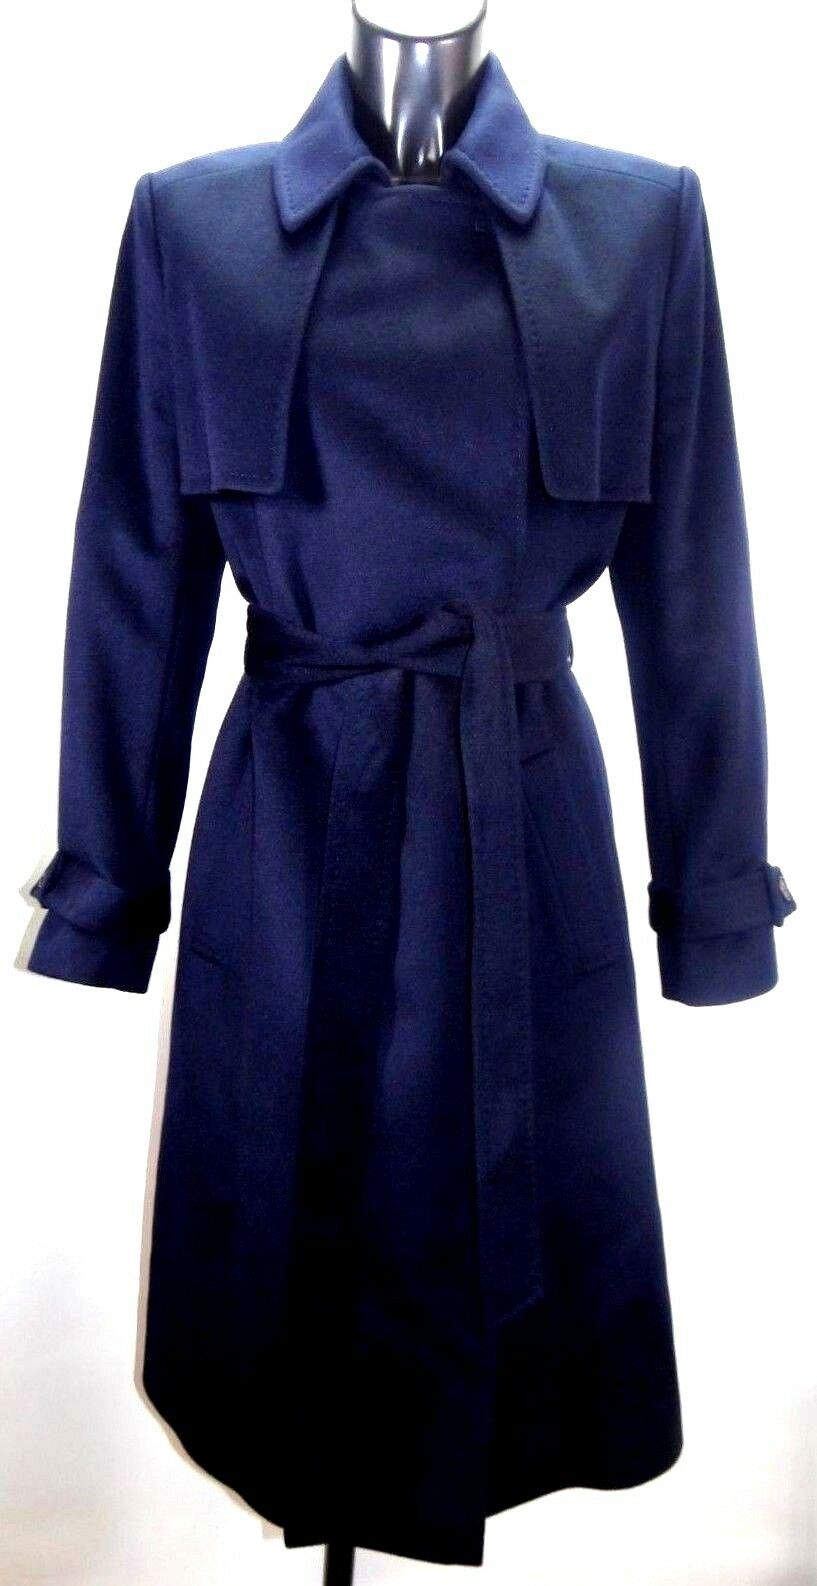 JAEGER Navy bluee Wool Trench Coat sz 12 BNWT